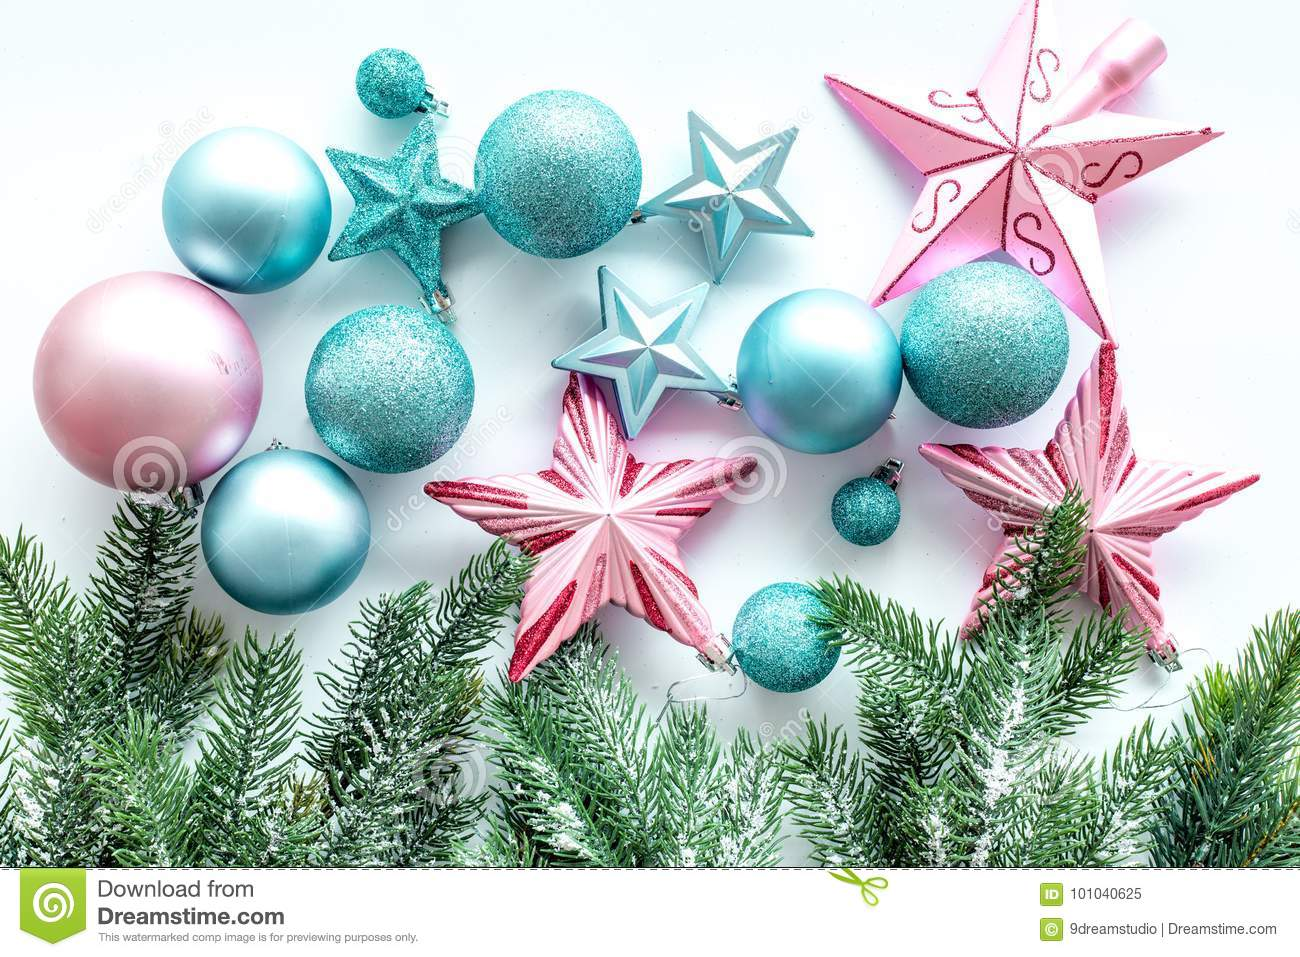 decorate the christmas tree pink and blue stars and balls near pine branches on white